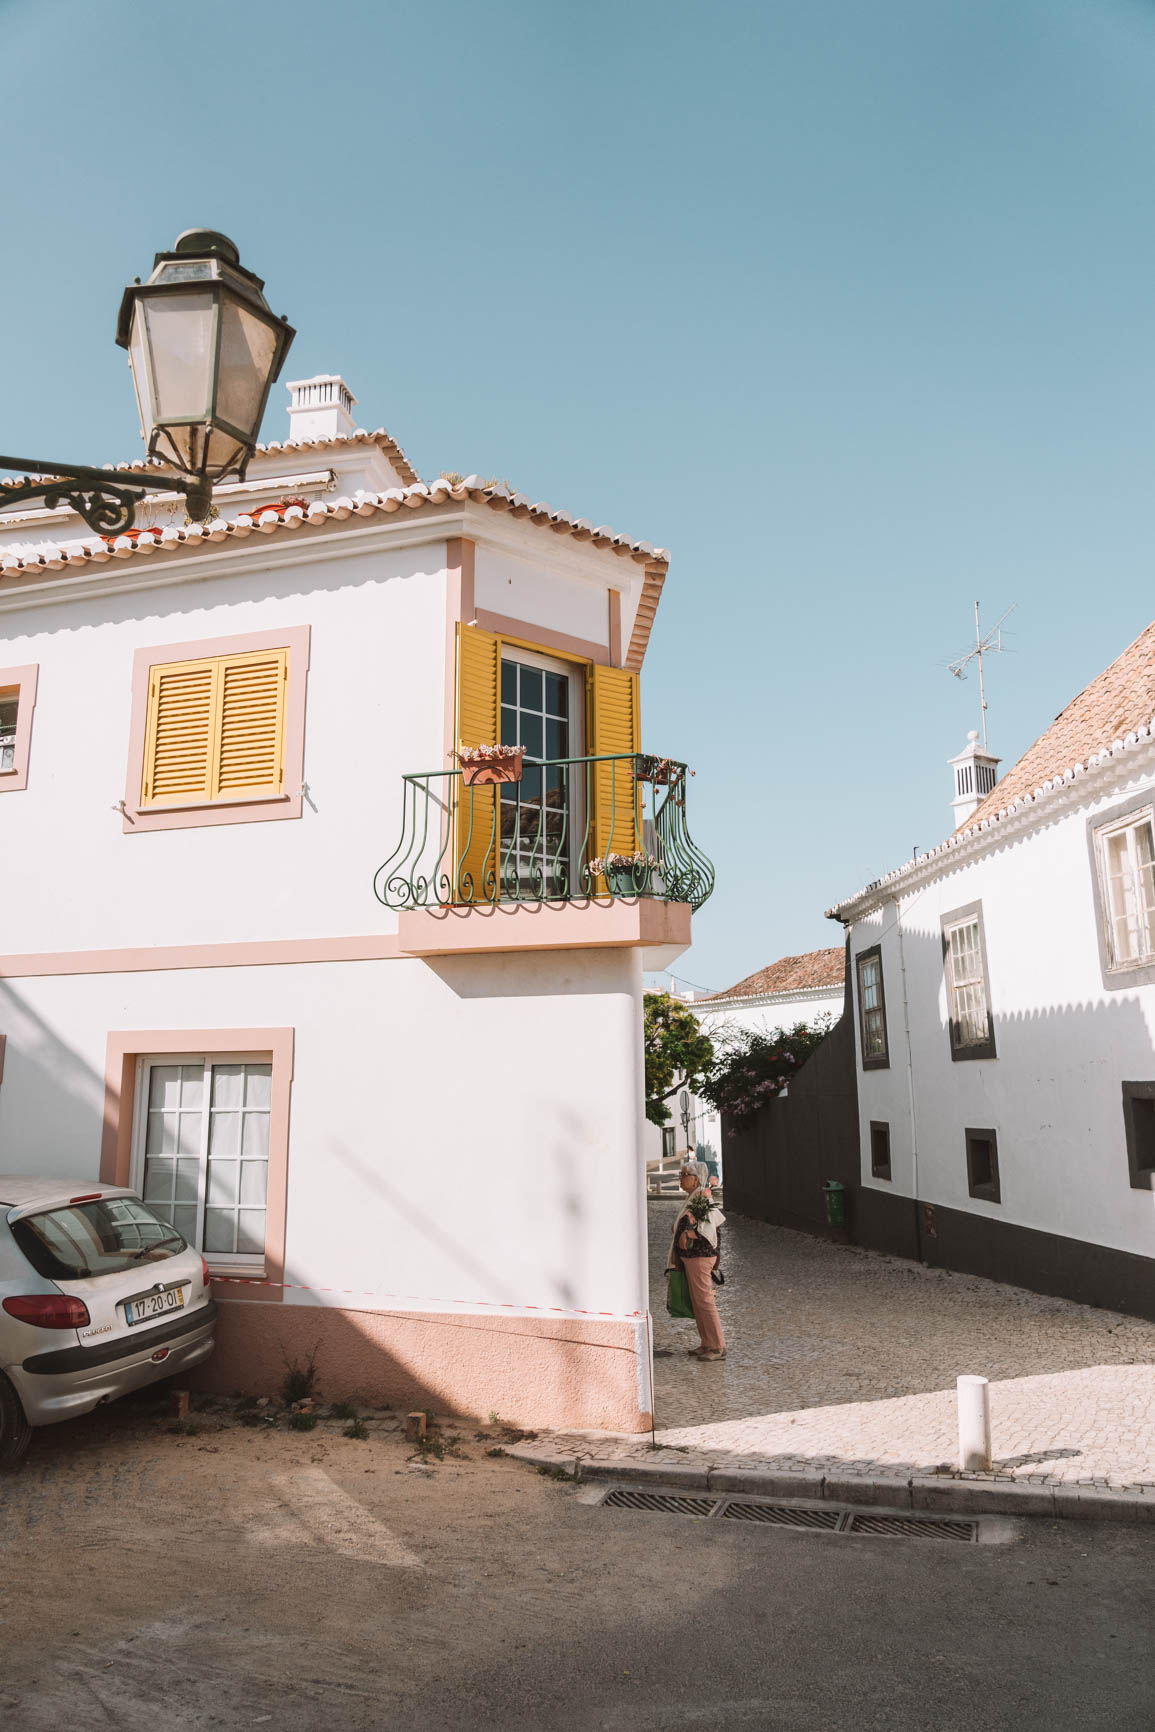 Amazing Portugal Itinerary: 10 Days Road Trip - From Lisbon to Lagos #Europe #Portugal